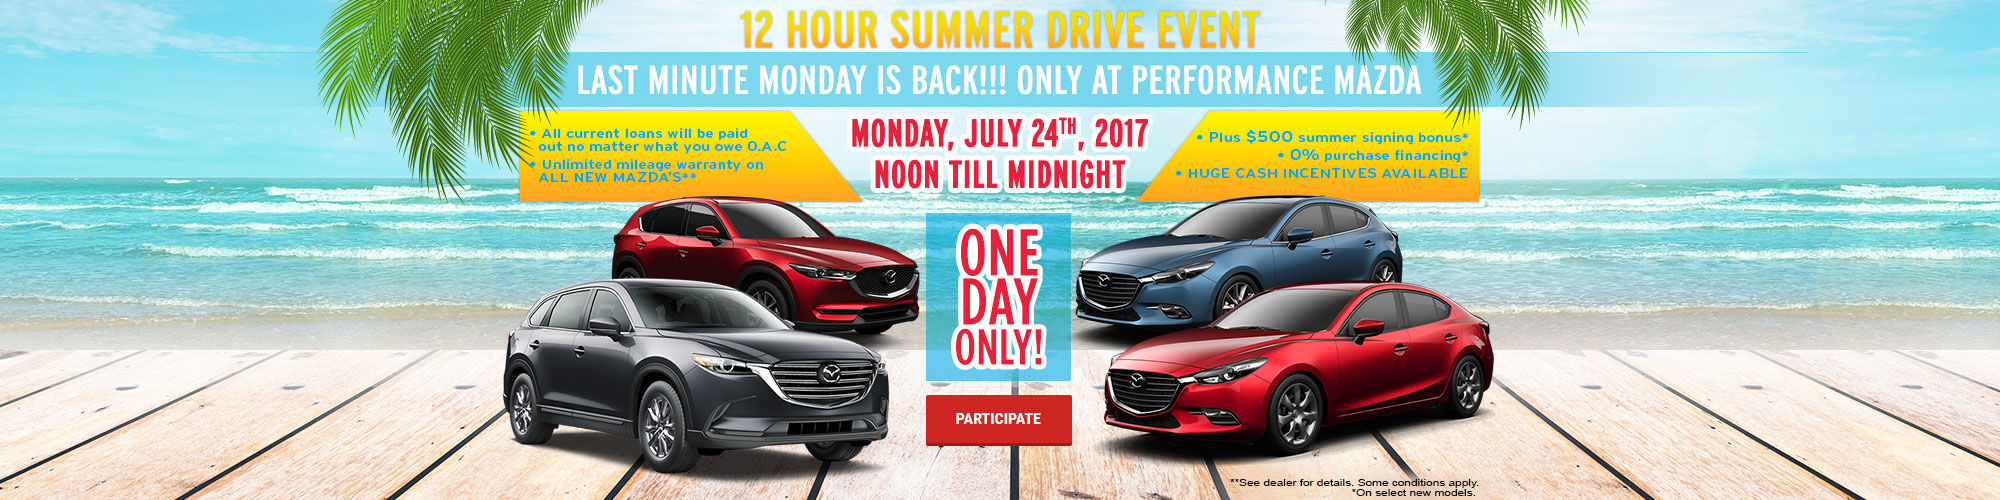 Last Minute Monday - July 24th